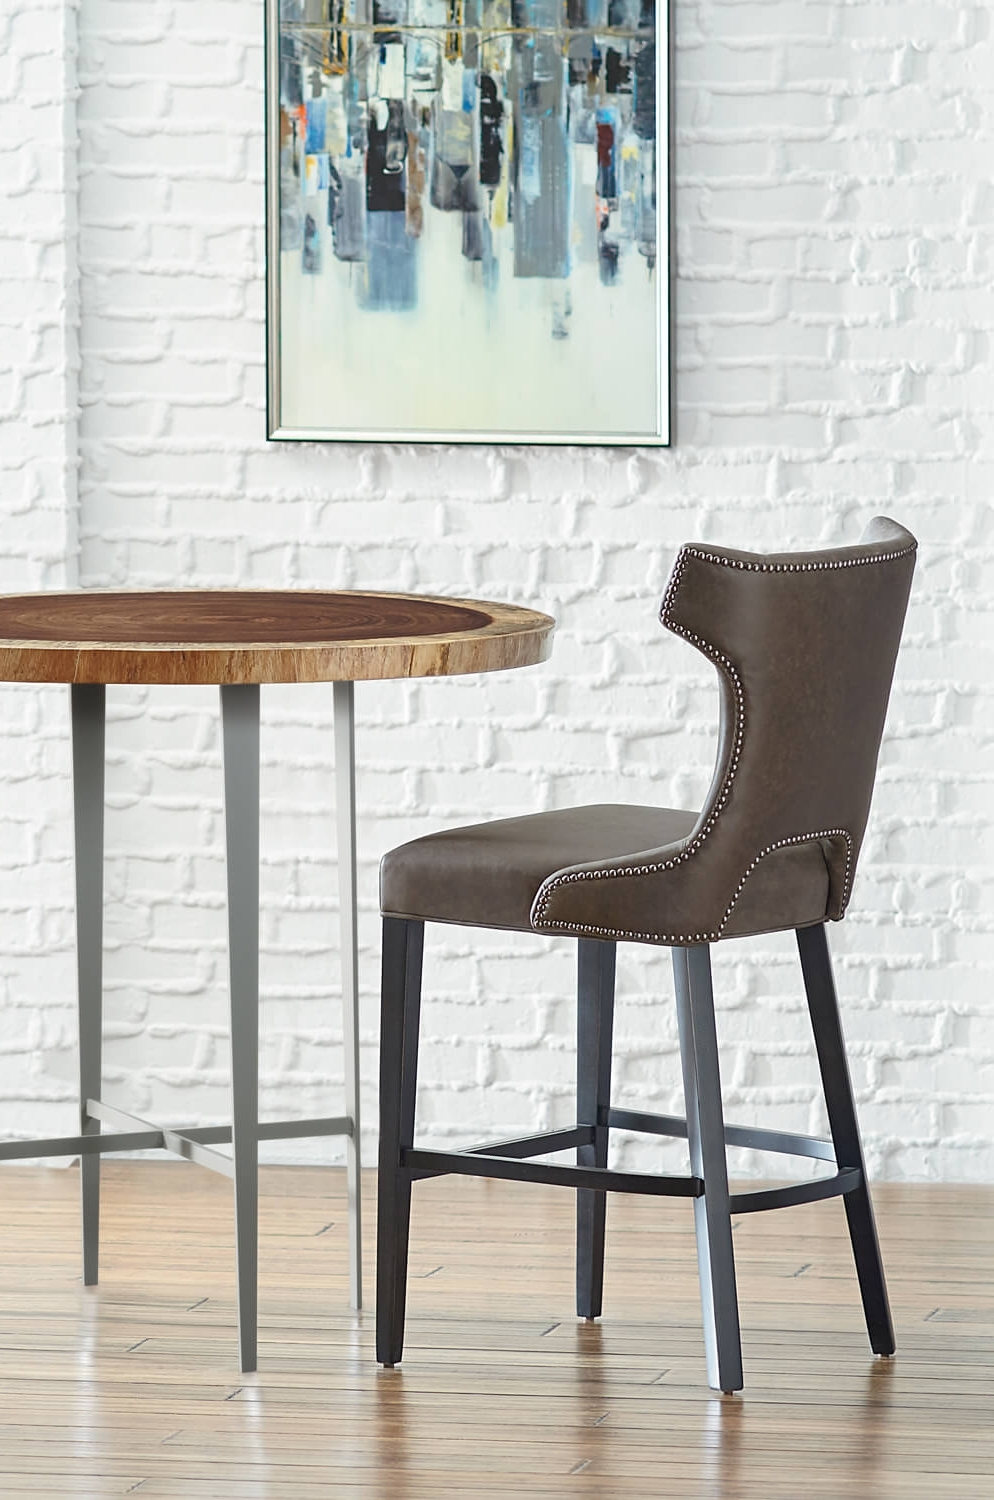 Preferred Gavin Transitional Wood Bar Or Counter Stool W/ High Back – Free For Gavin Dining Tables (View 17 of 25)